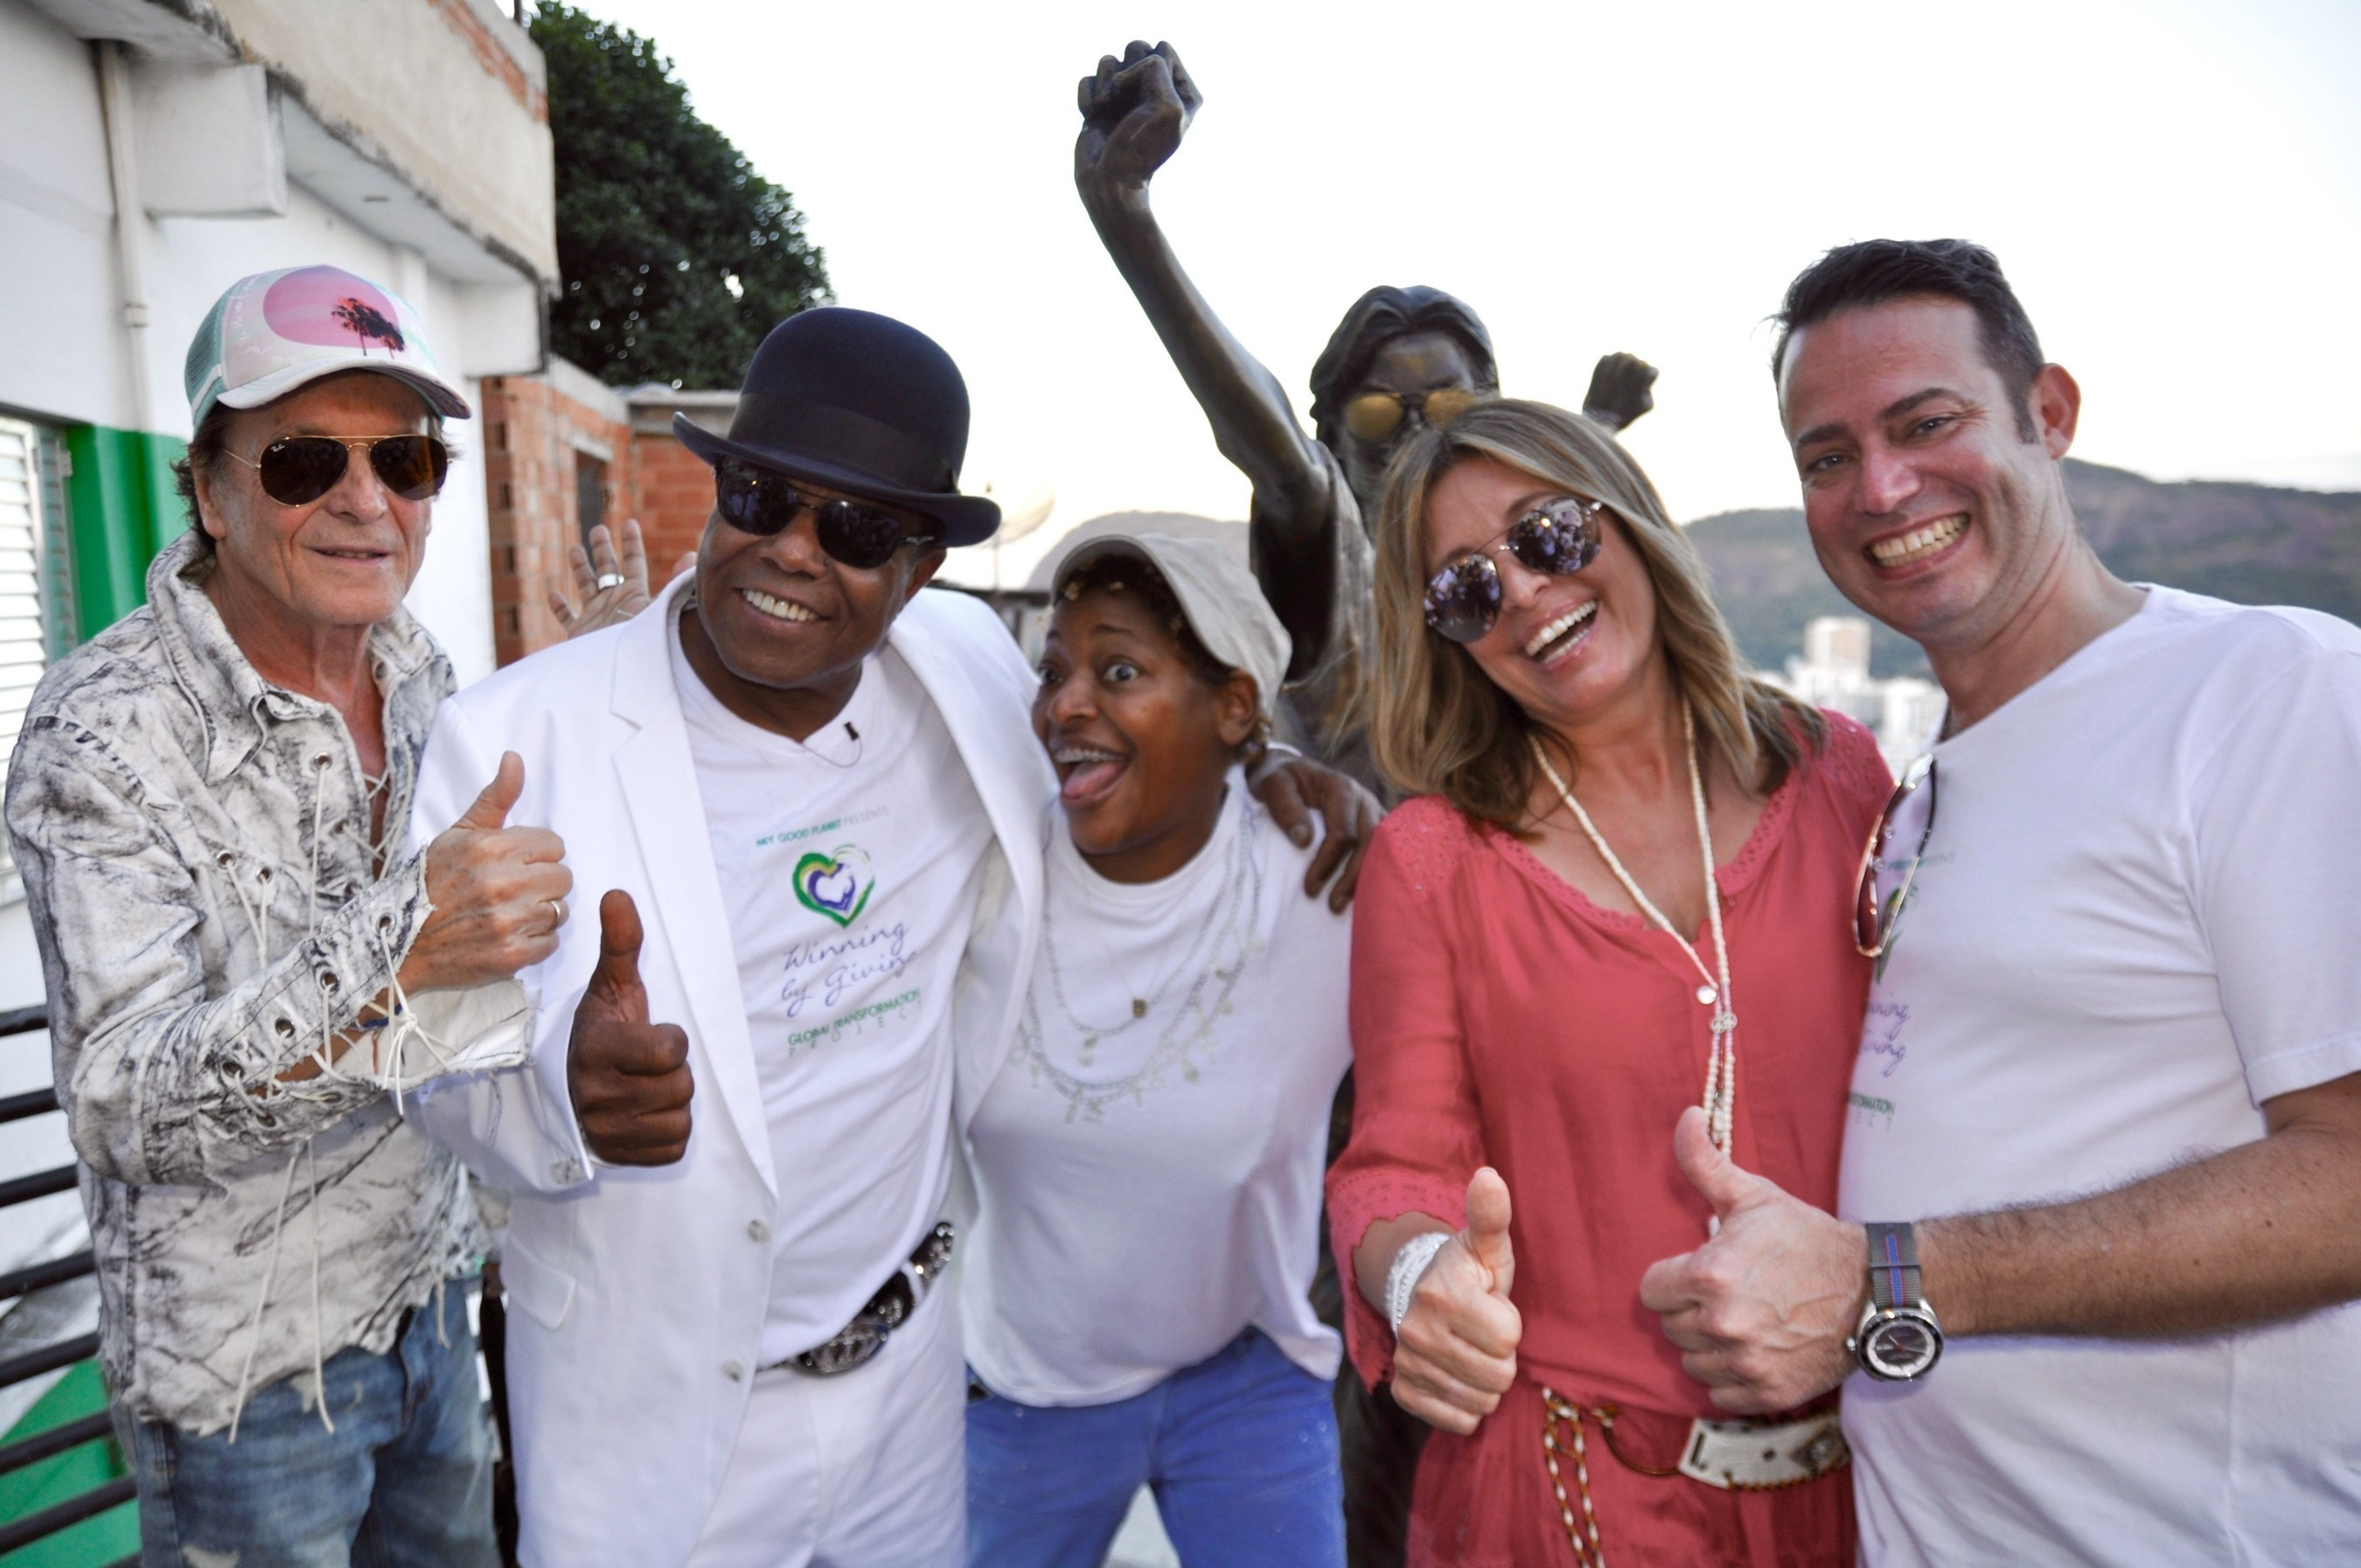 Tito Jackson Shoots Music Clip Answer to Michael's 'They Don't Care About Us' in the Favelas of Rio